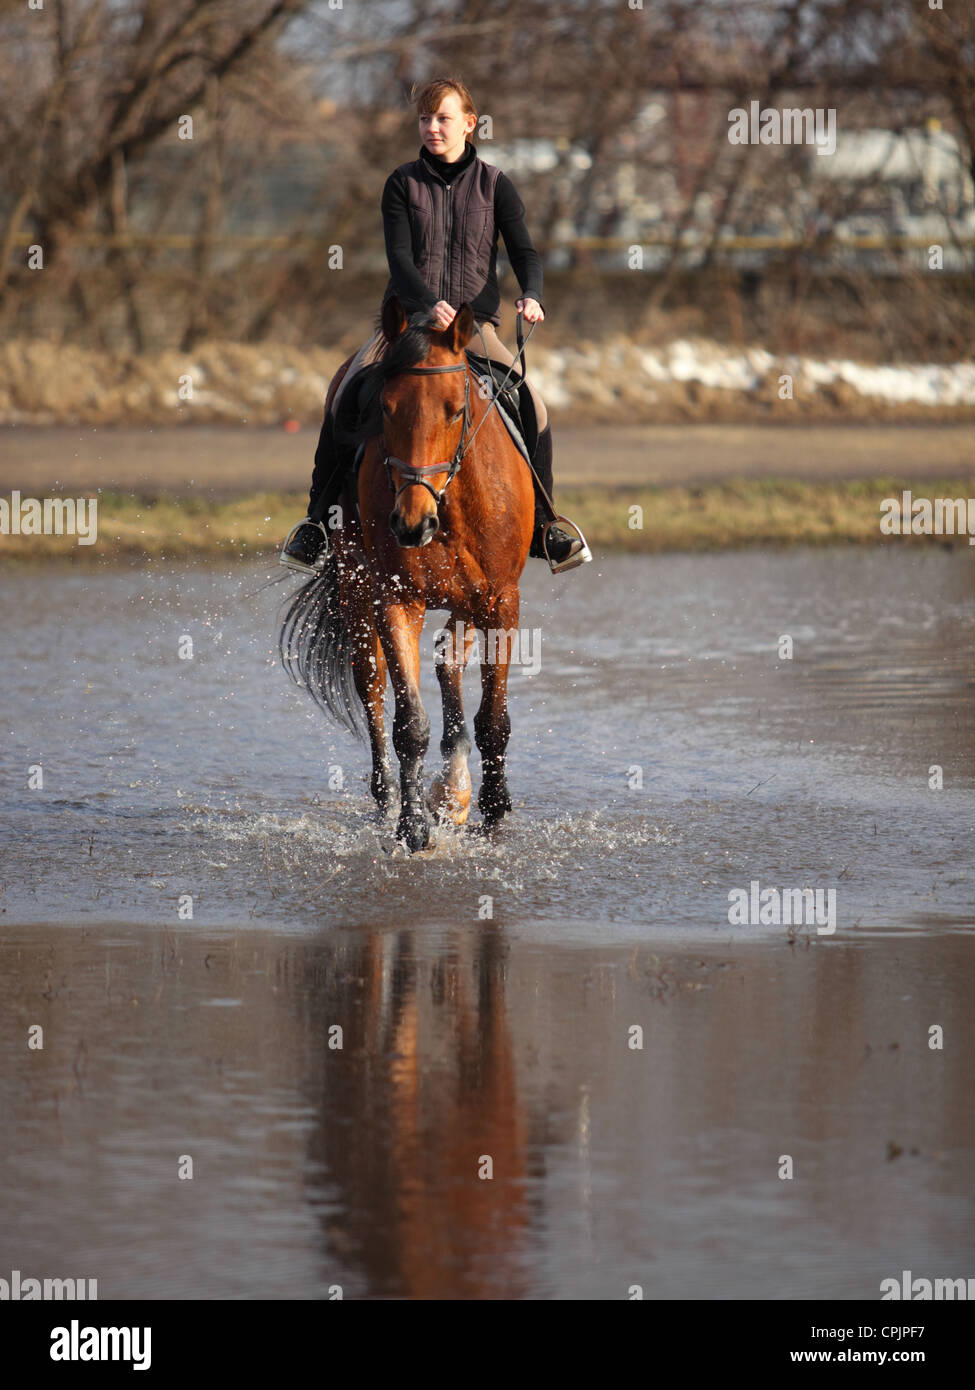 Girl horseback riding on a bay horse through the water of small lake in Russia - Stock Image